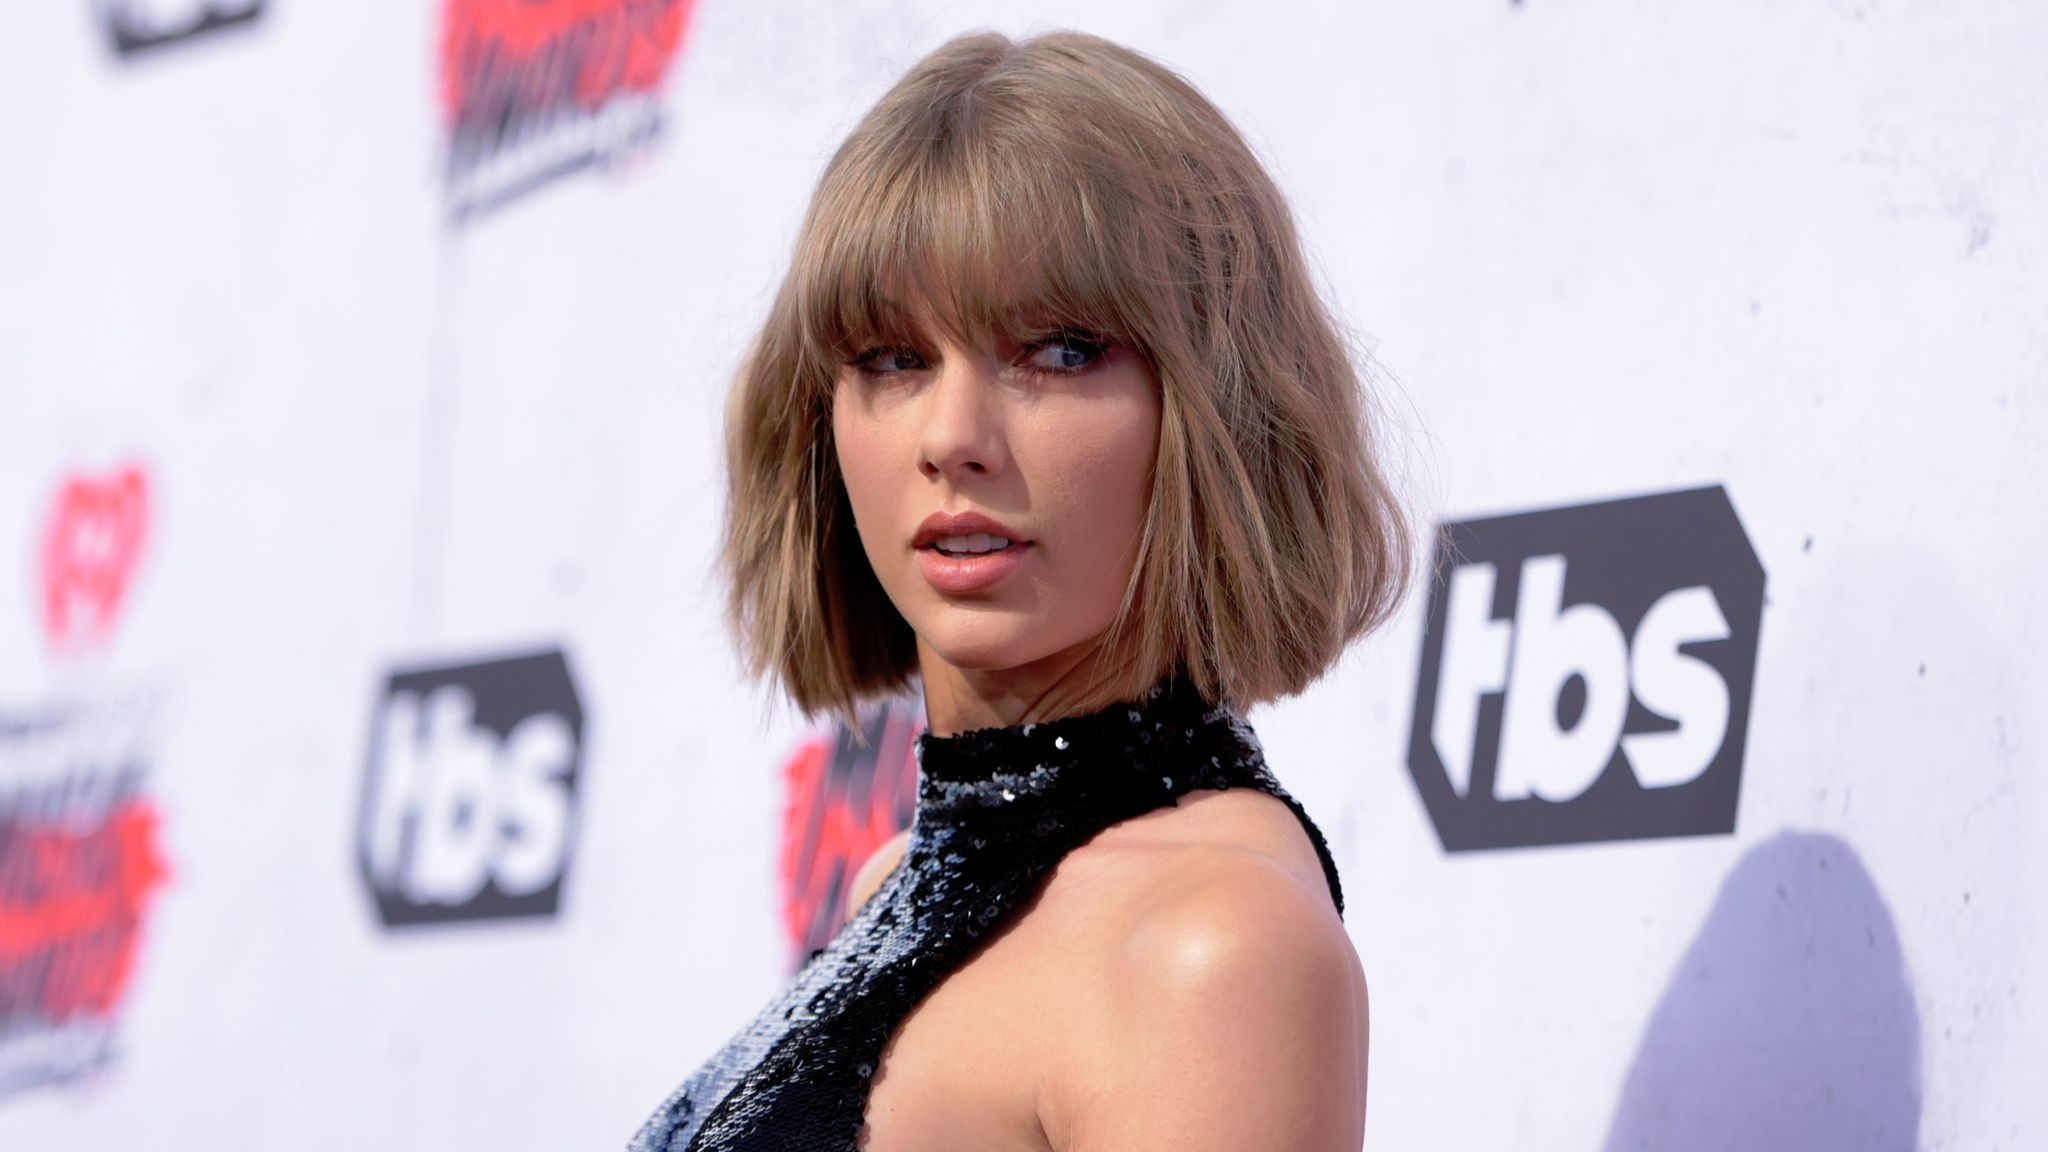 DJ David Mueller takes stand in court to deny assaulting Taylor Swift